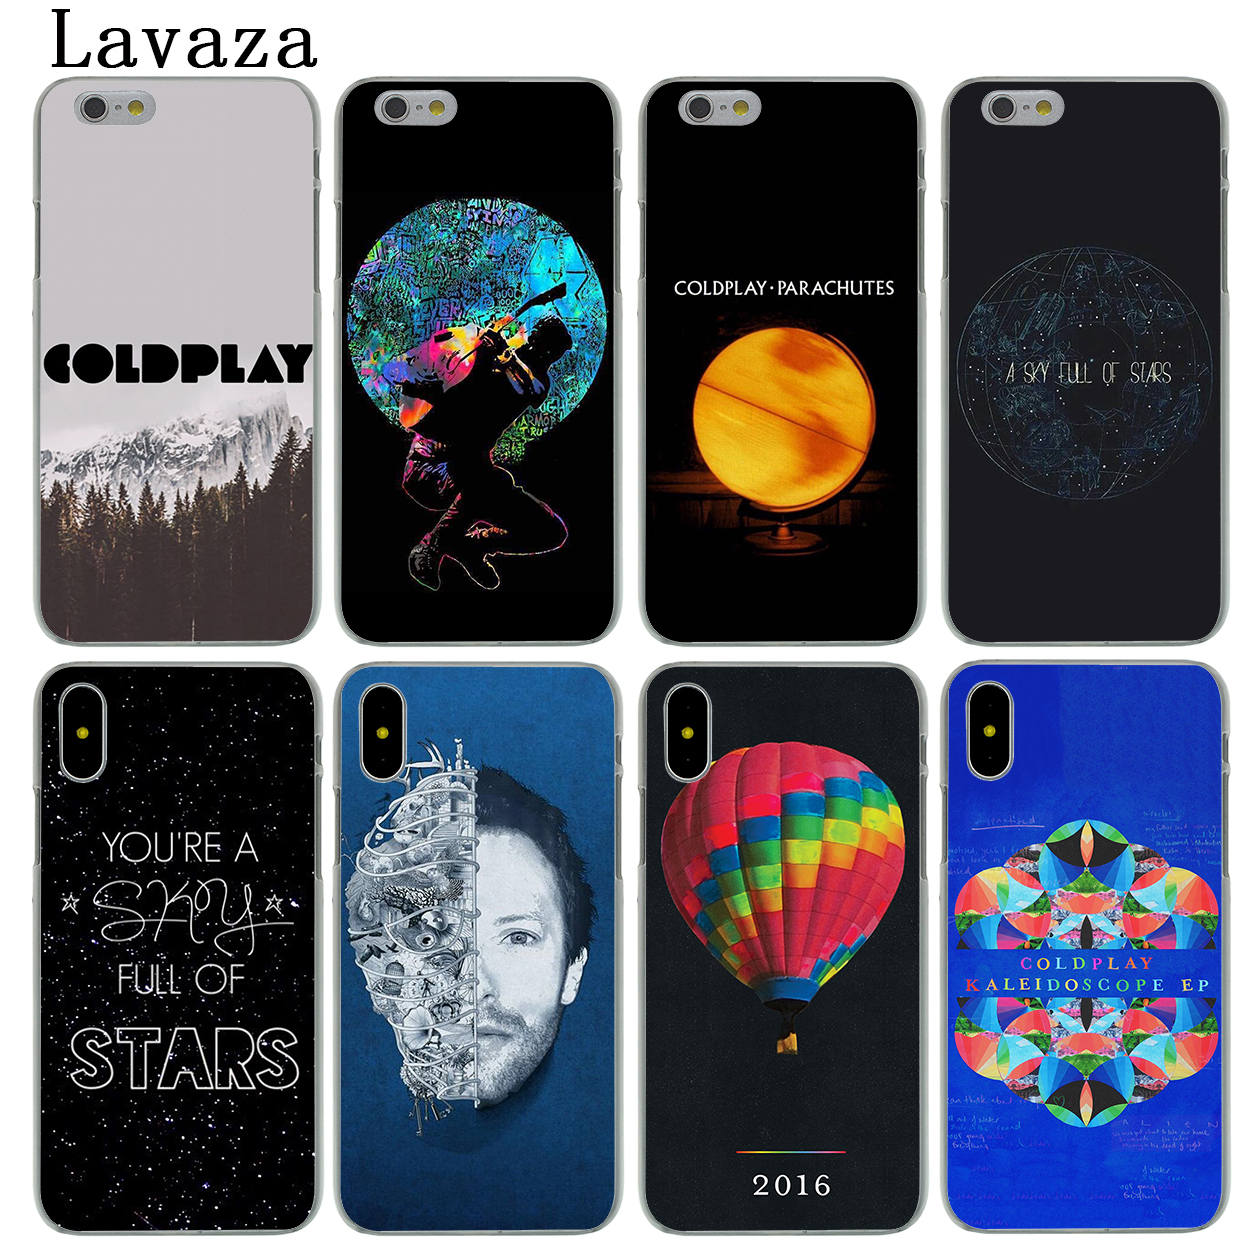 COLDPLAY FULL COLOR ART iphone case